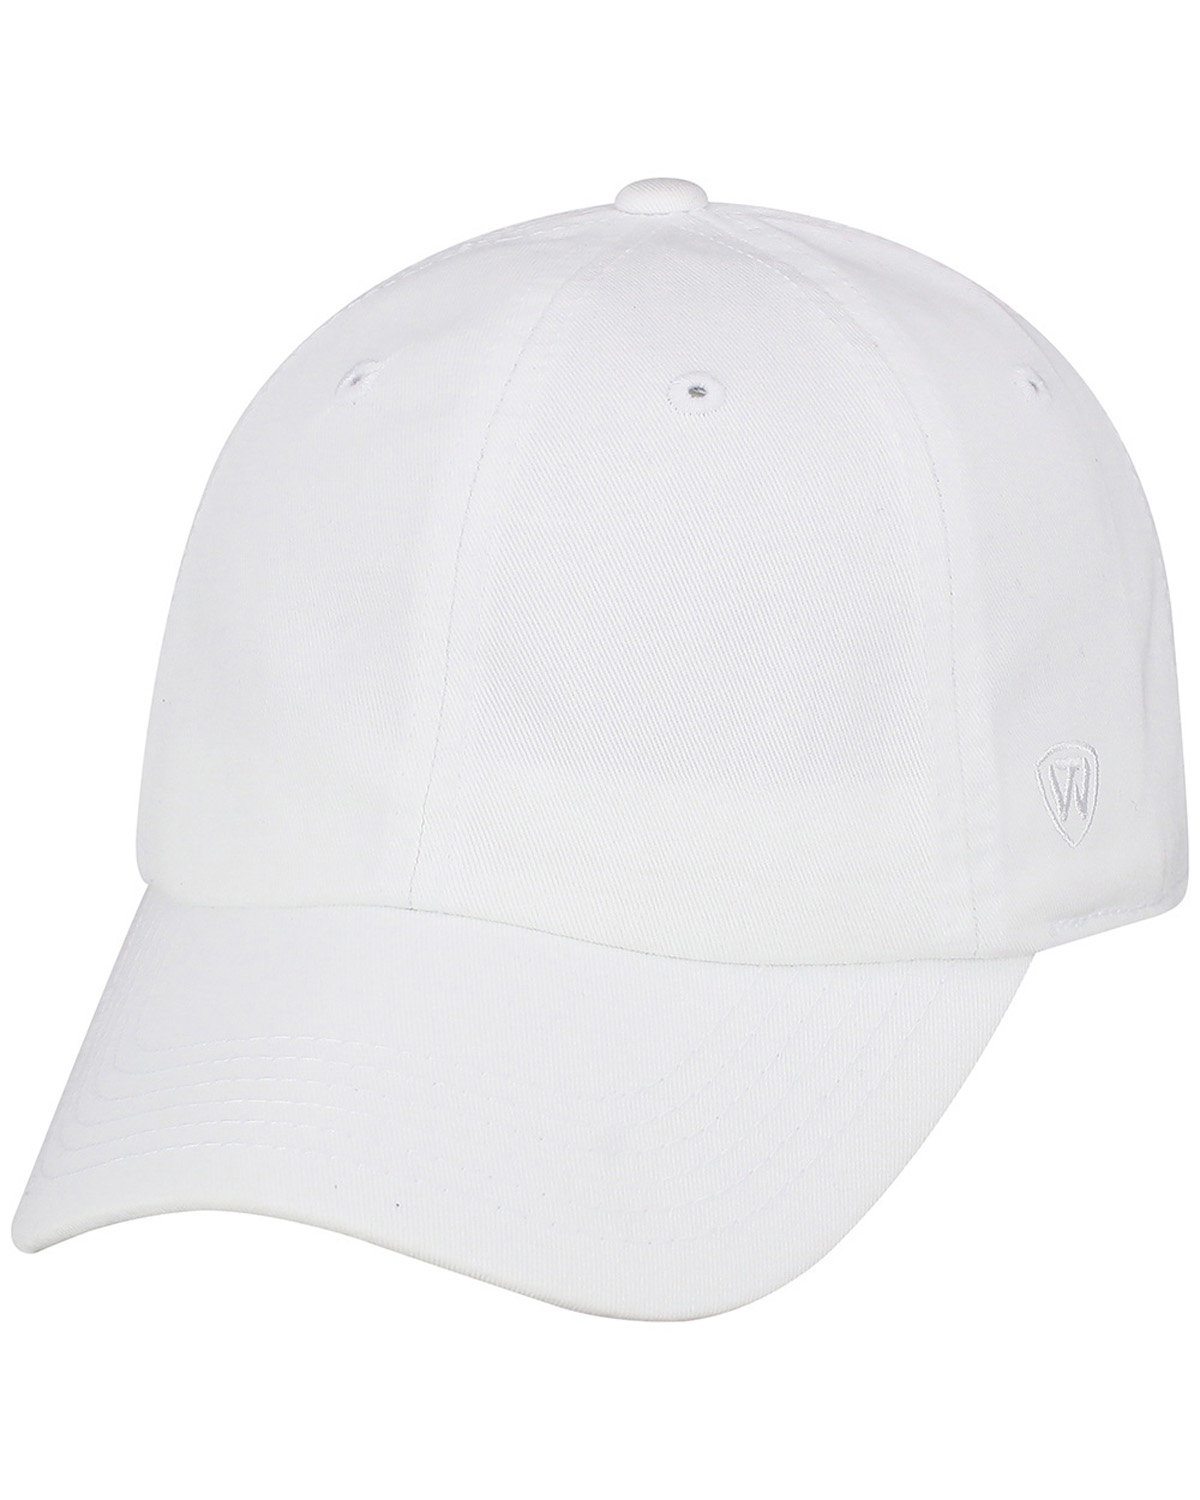 Top Of The World Adult Crew  Cap WHITE